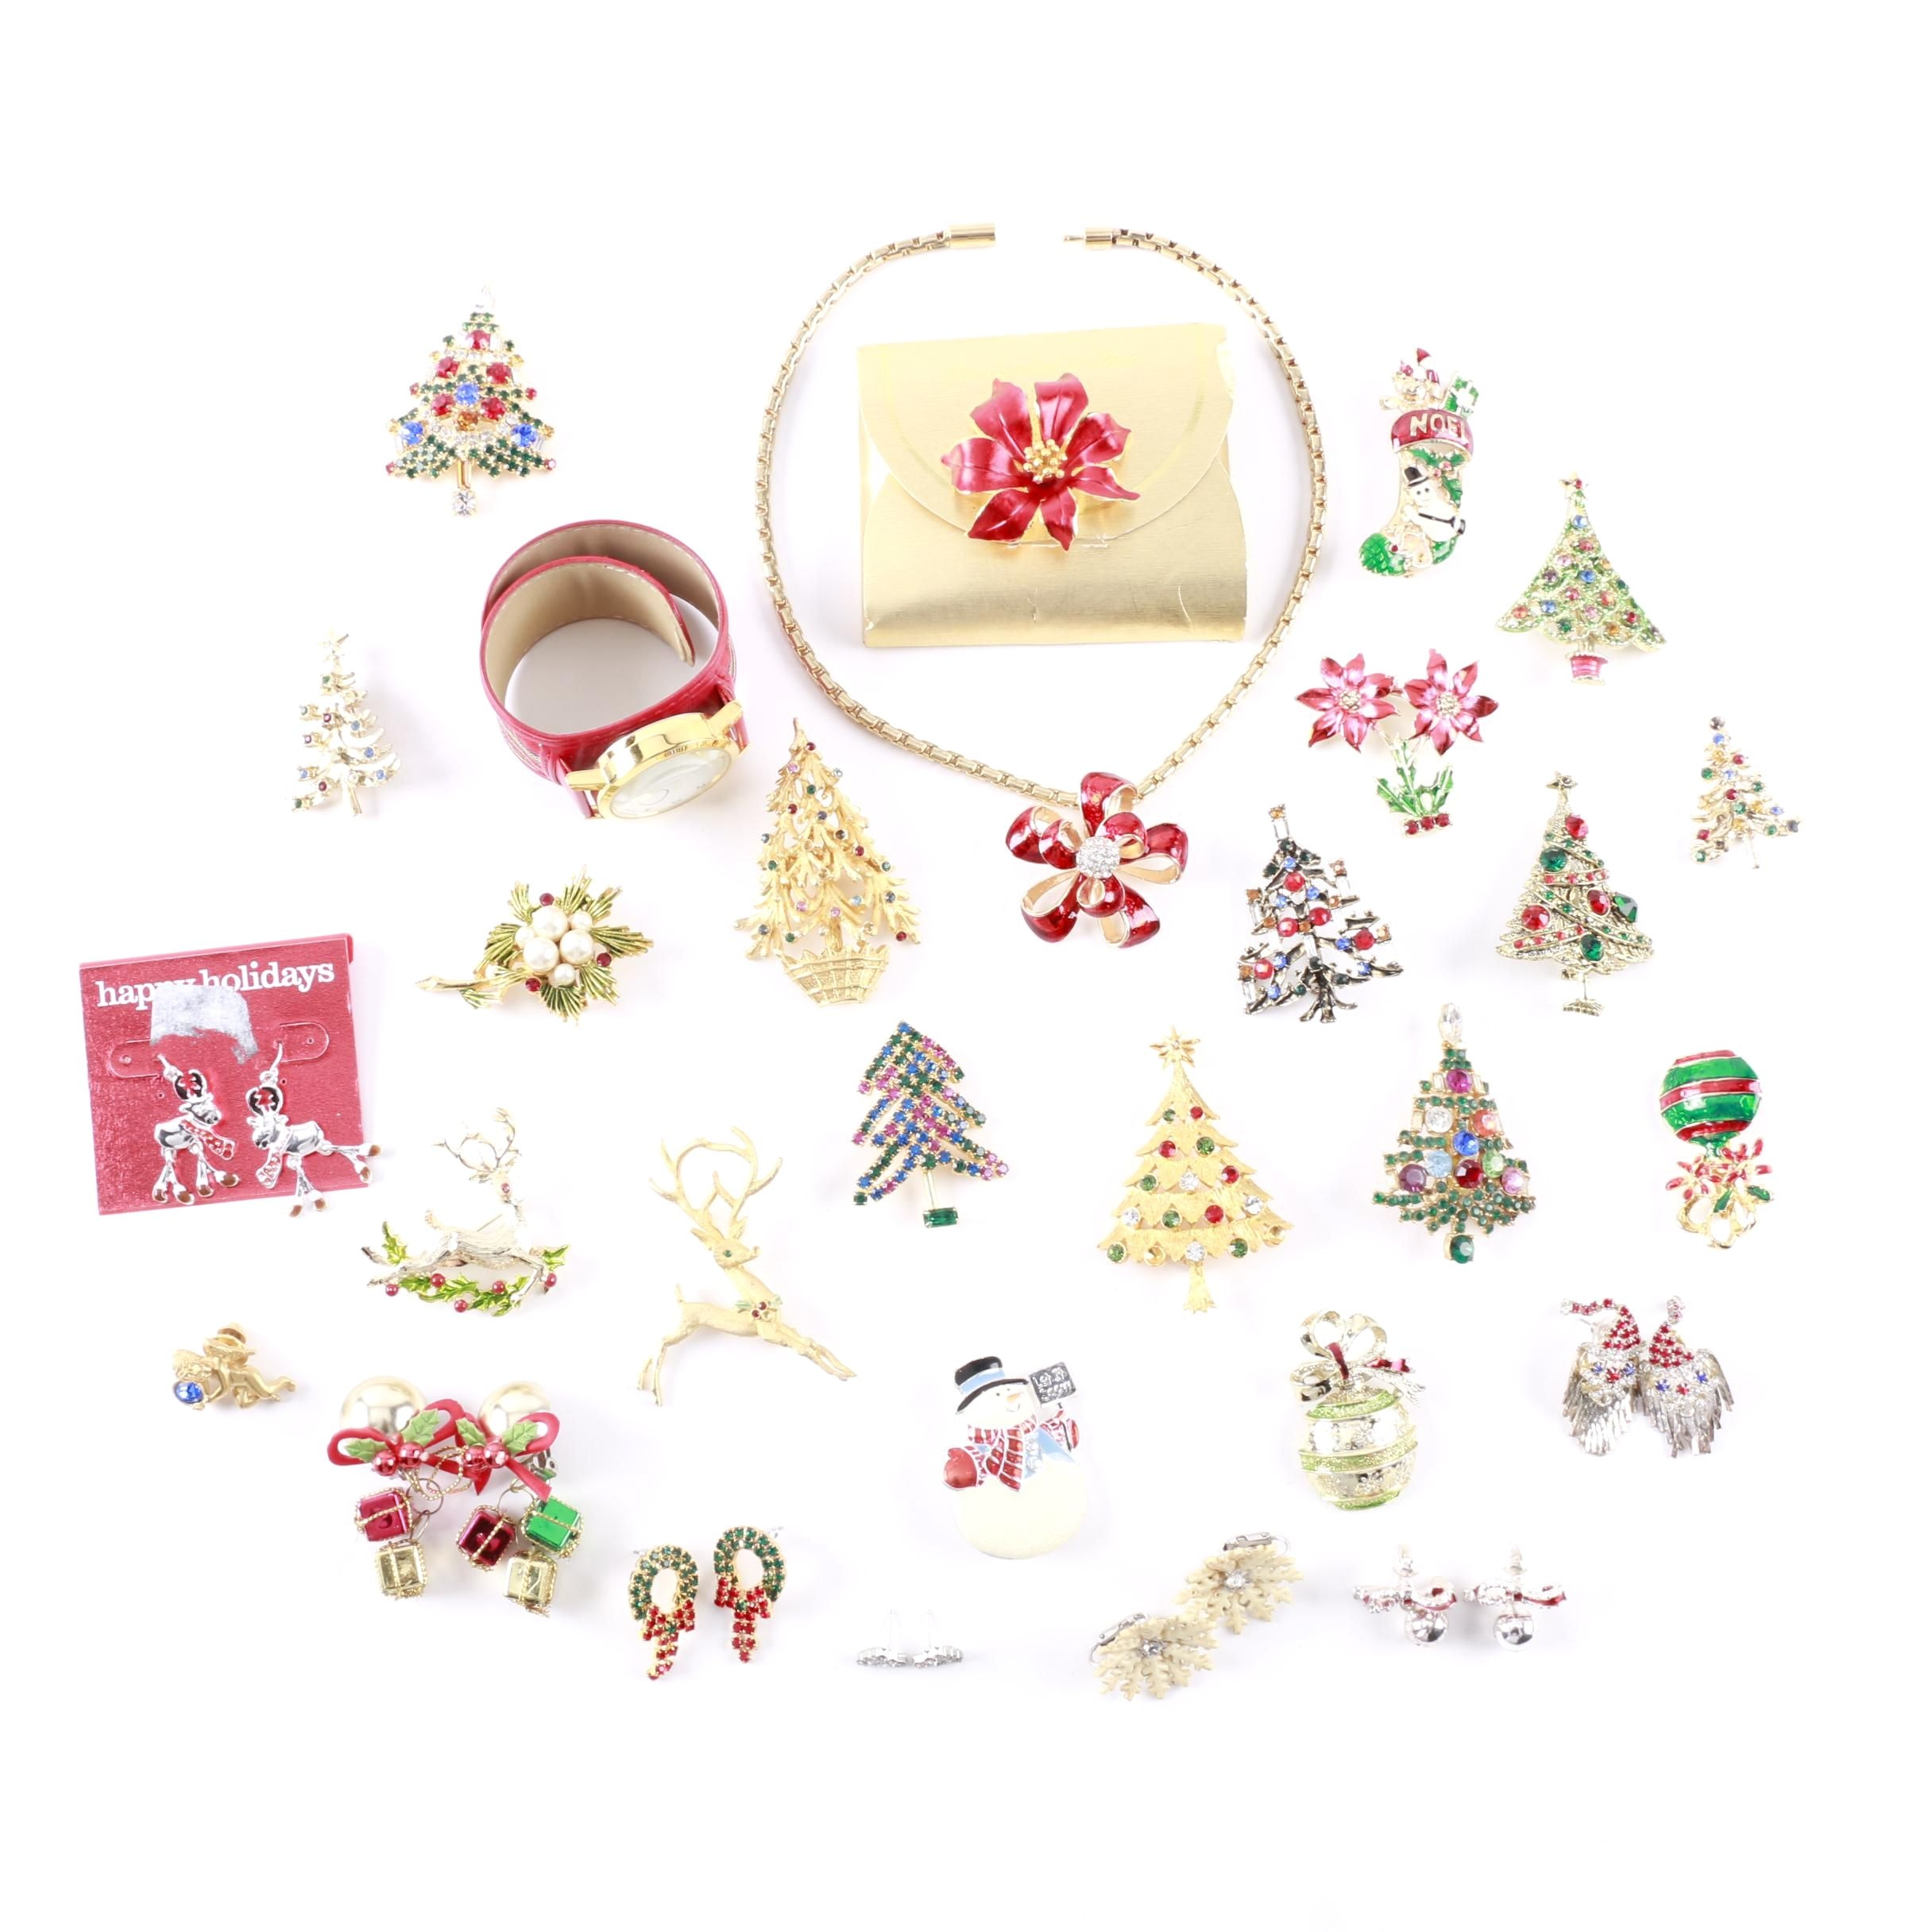 Silver and Gold Tone Christmas Earring and Brooch Assortment